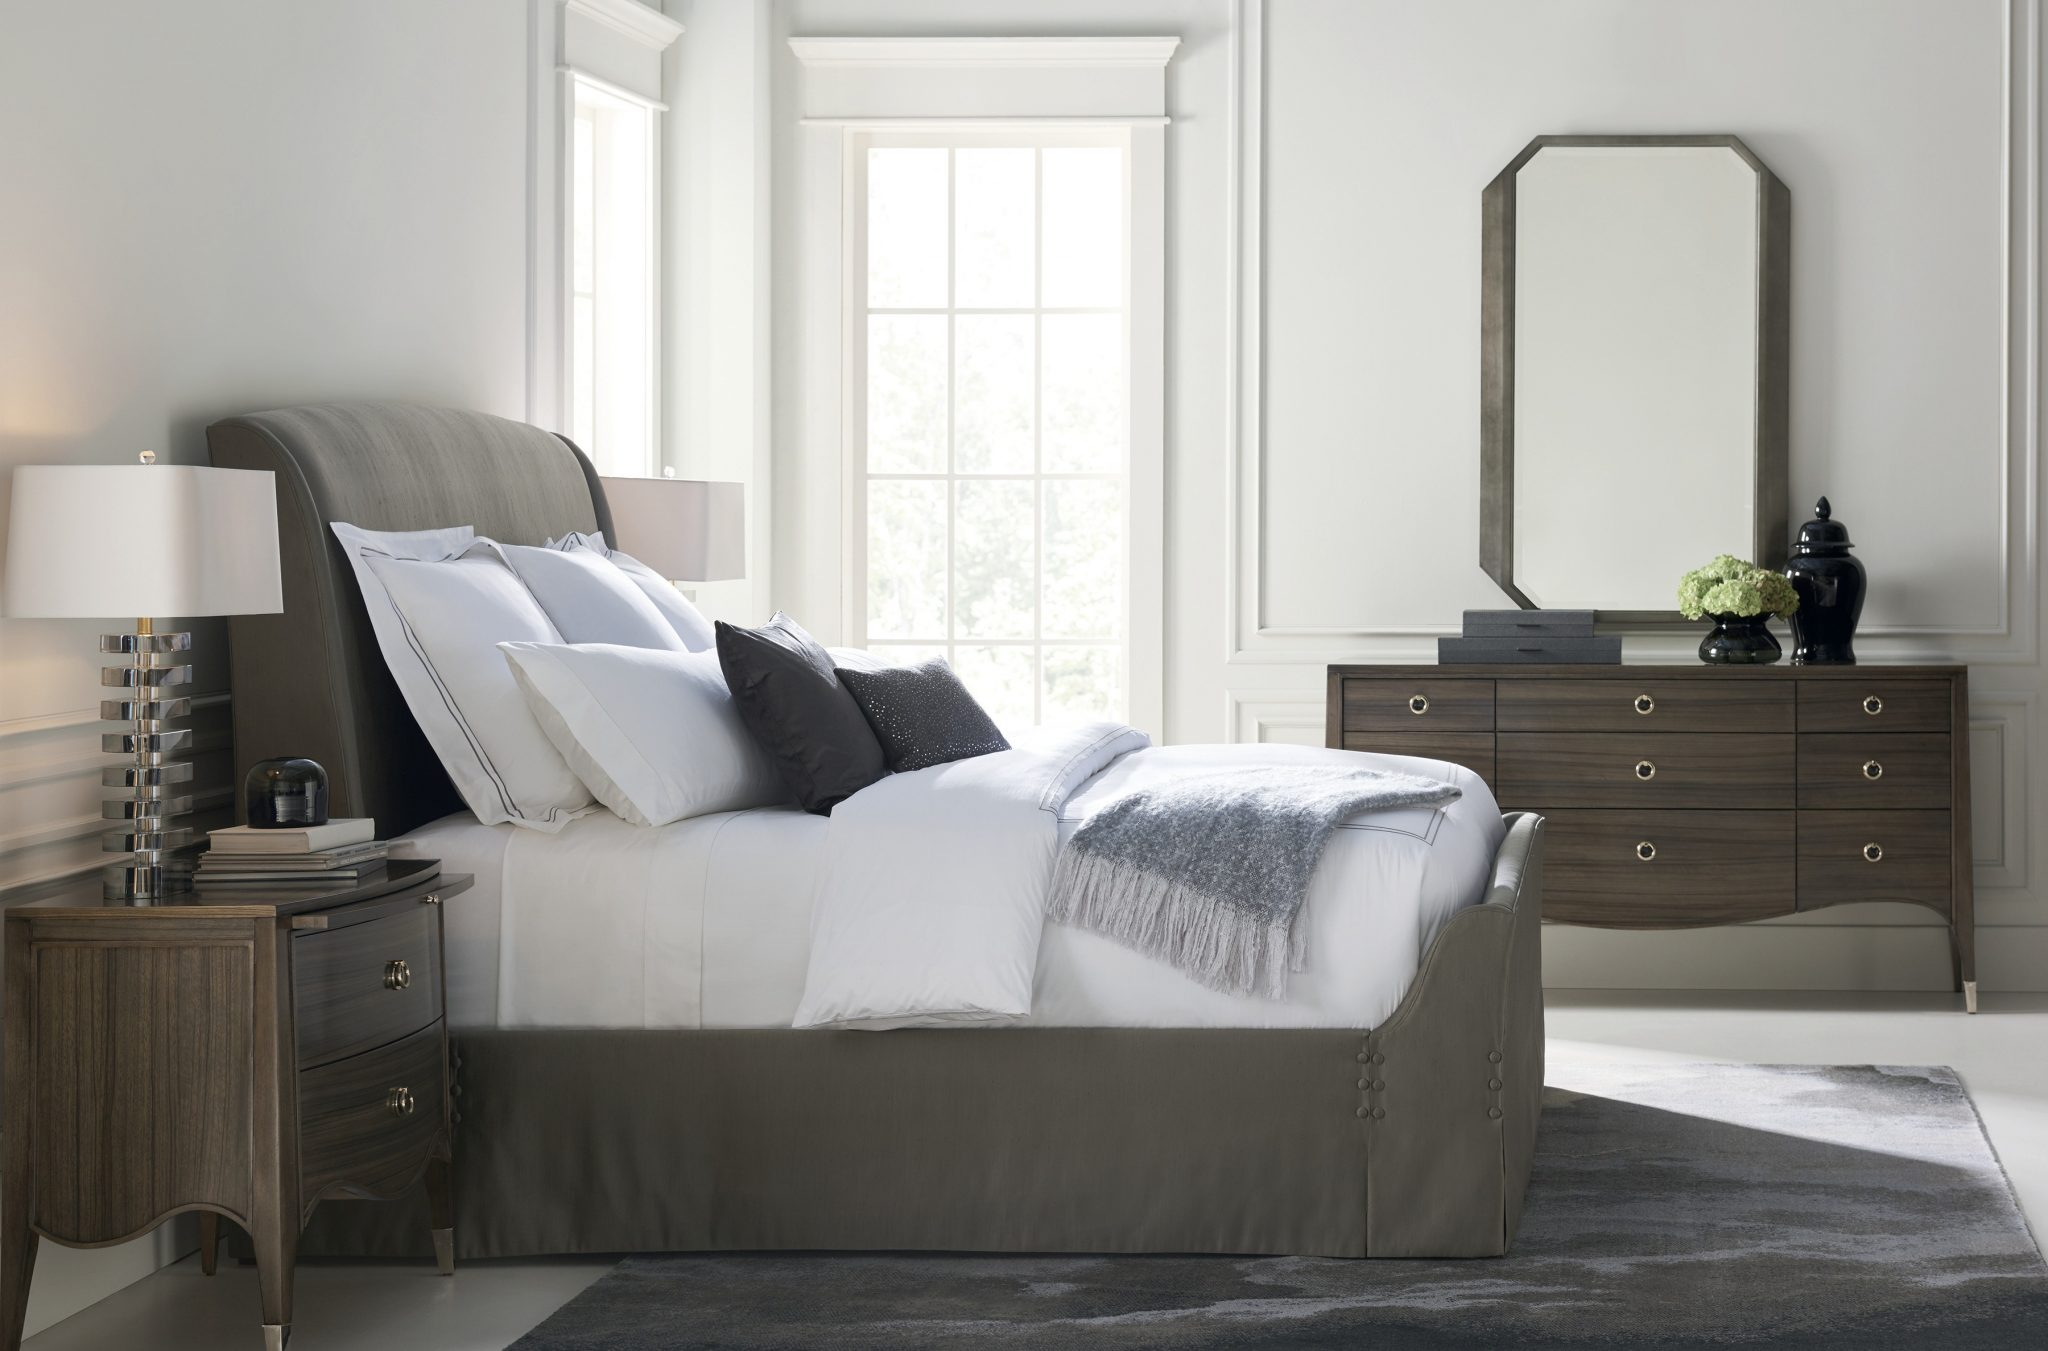 Bedroom Furniture and Decor - Cabot House Furniture and Design